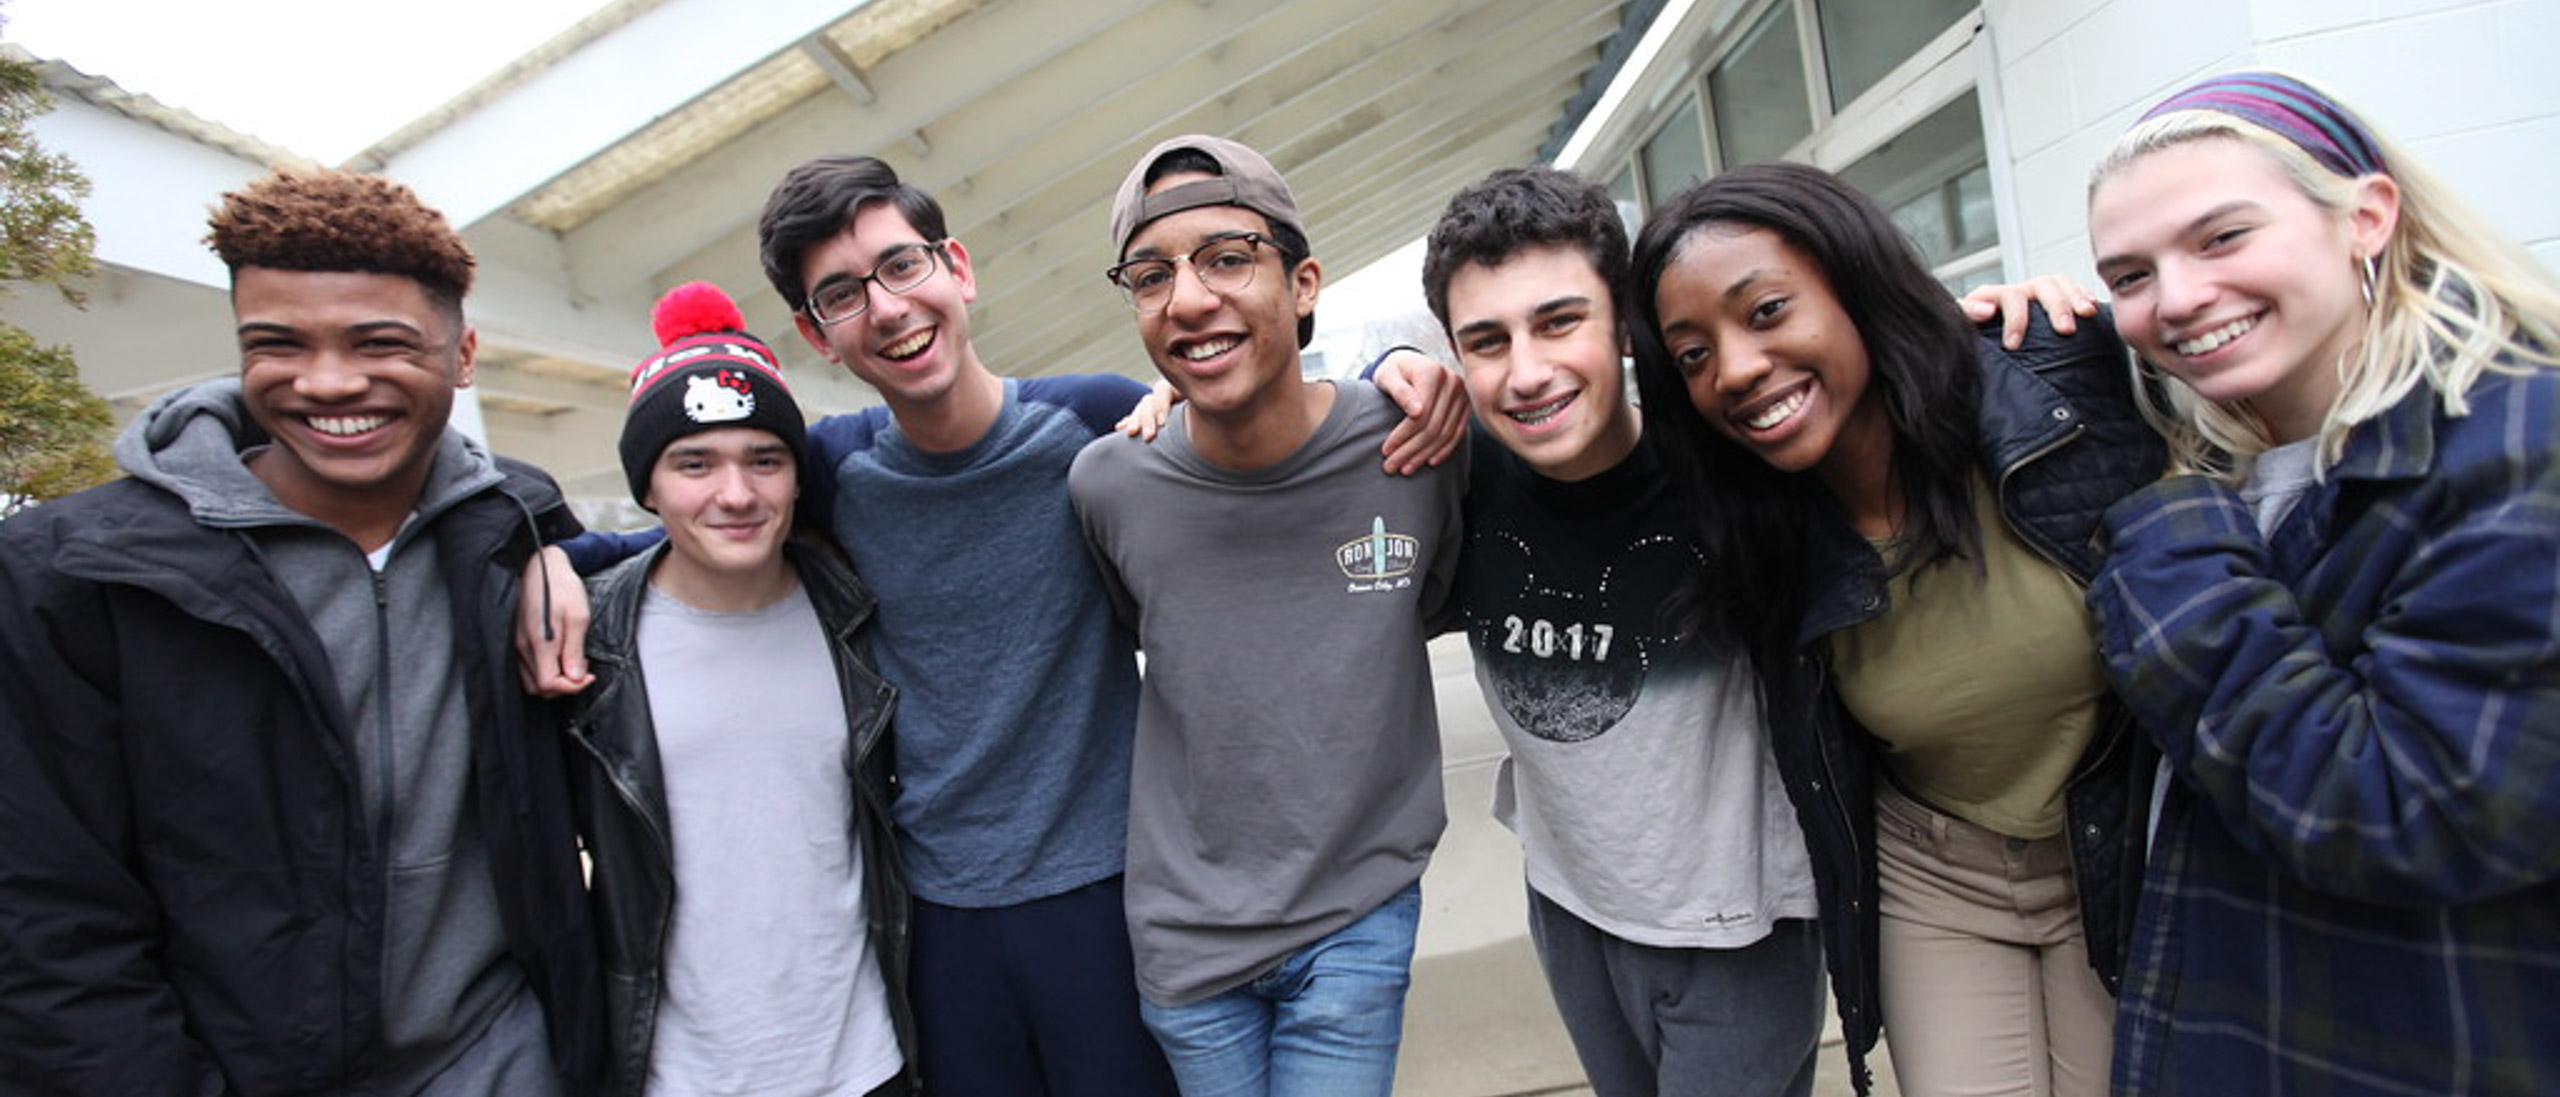 Group of students smiling and laughing together